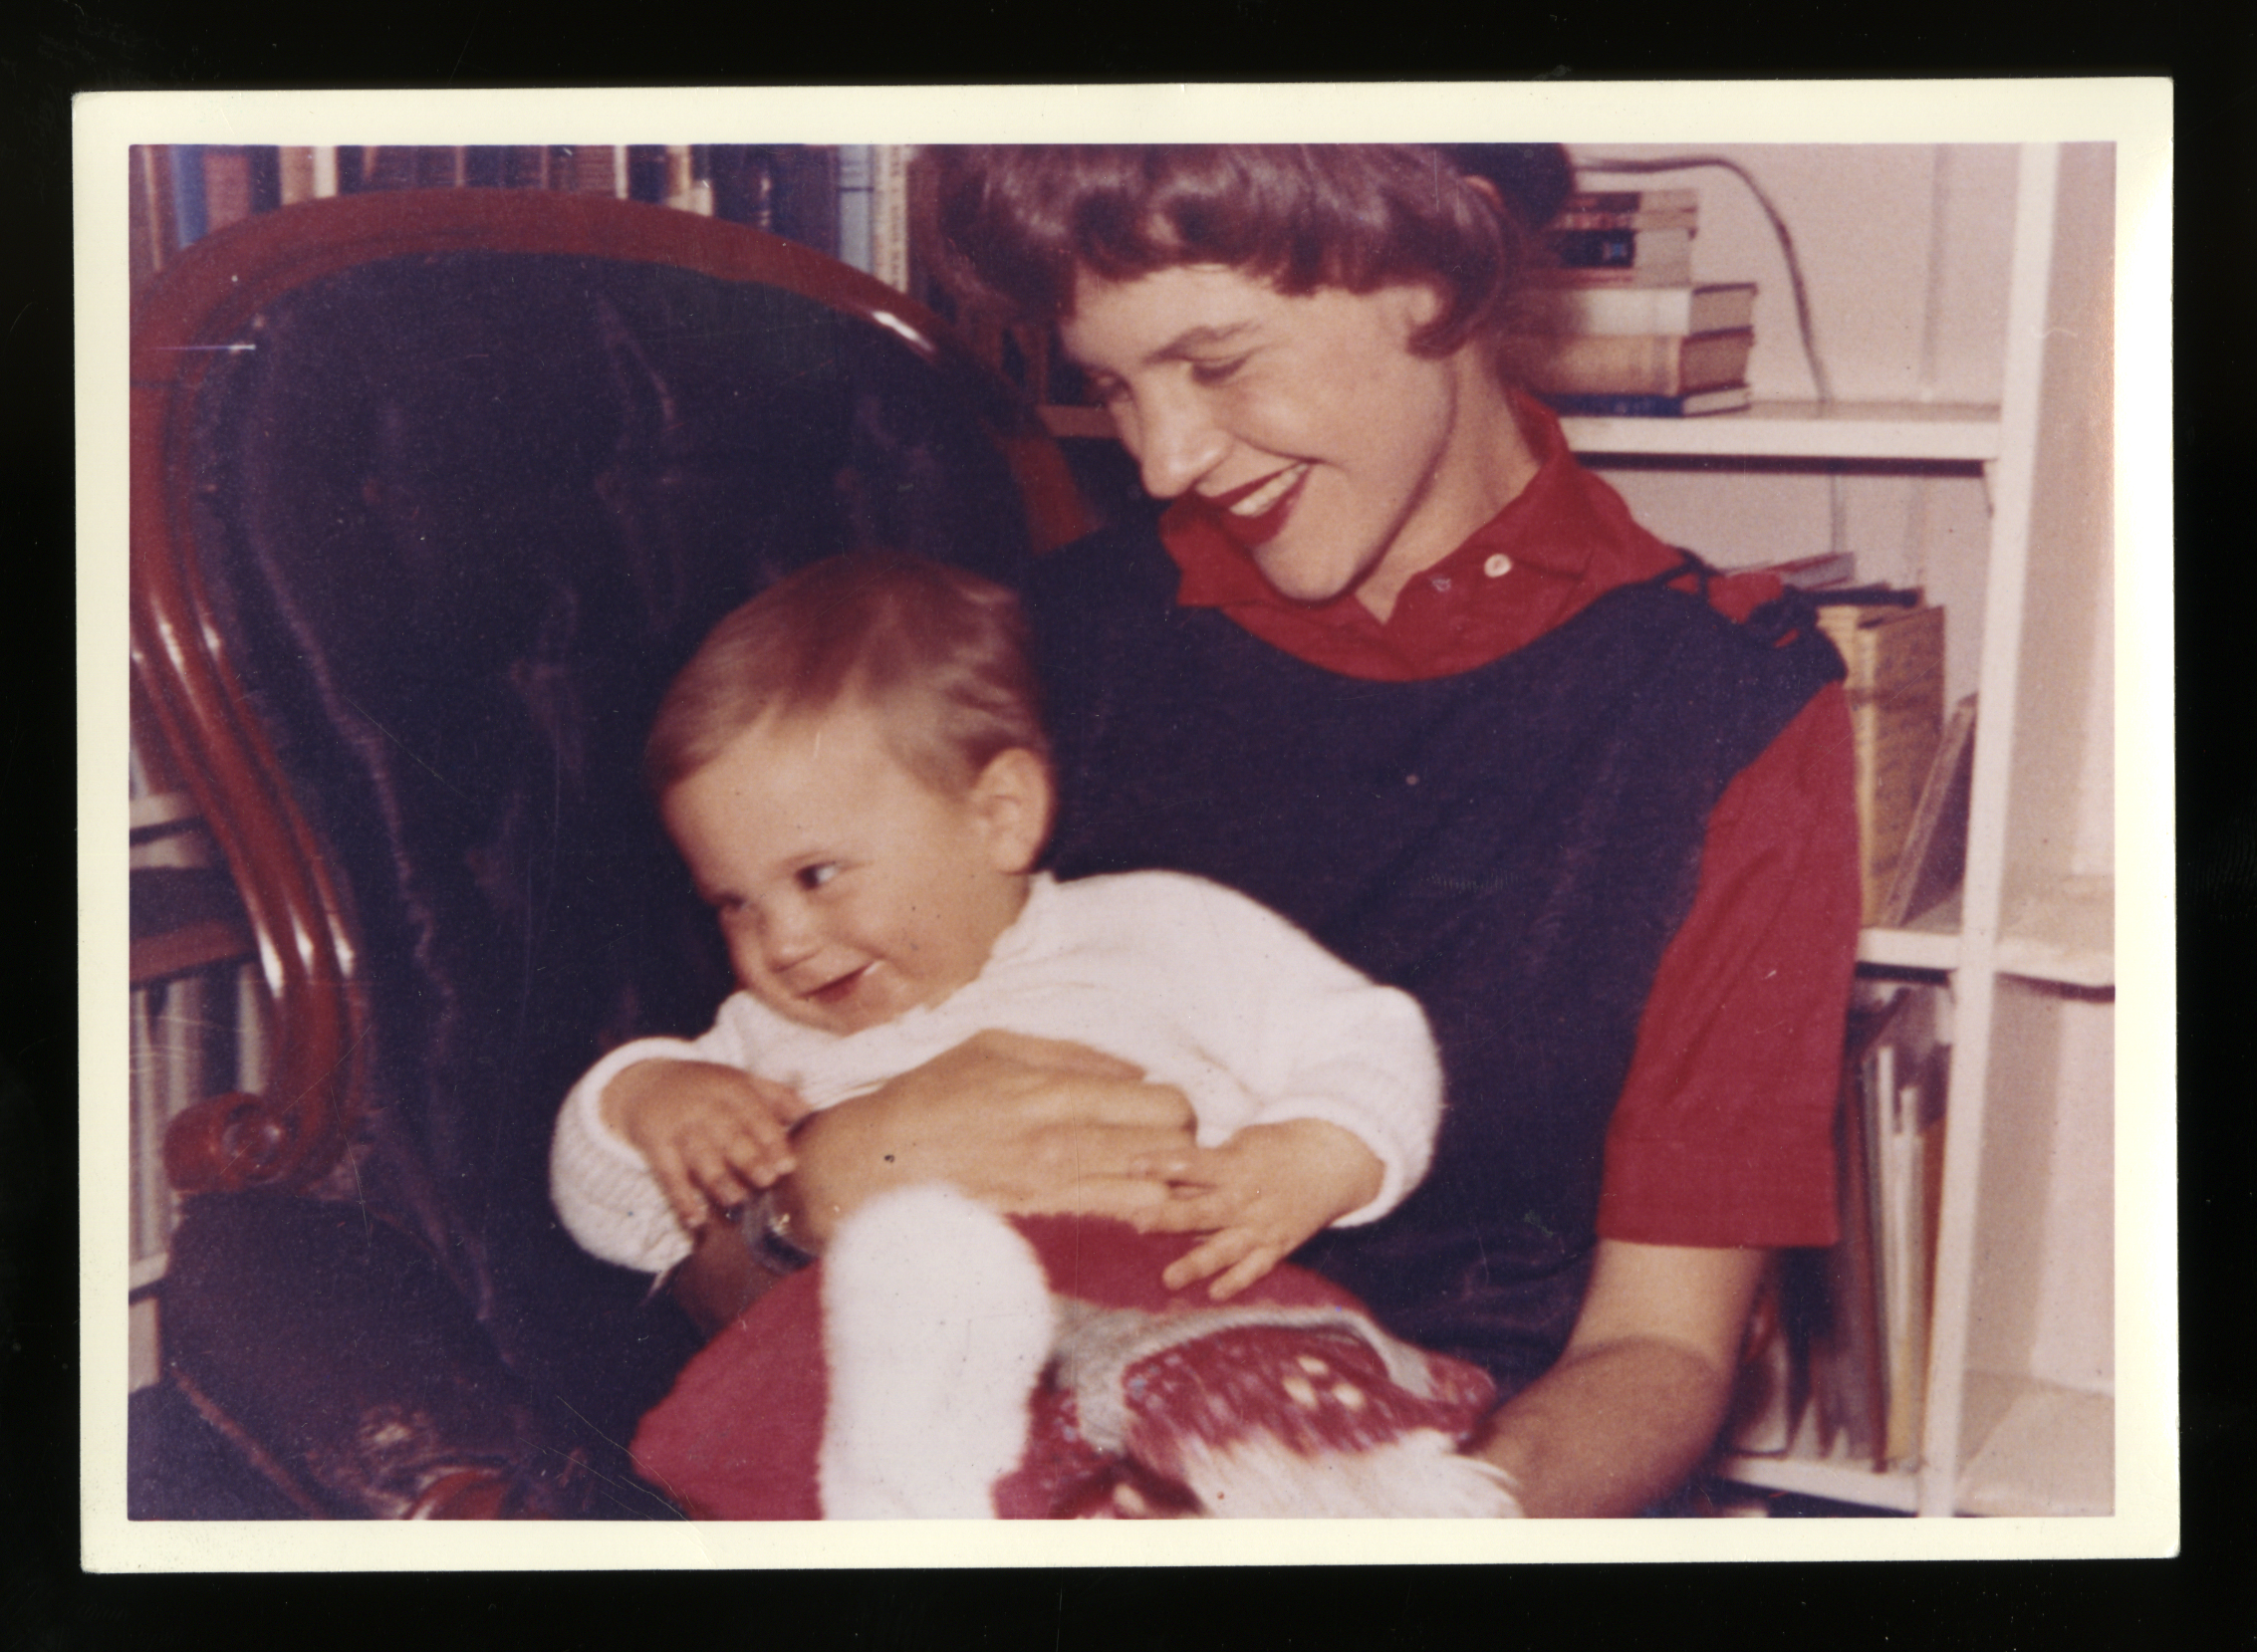 the early life and career of sylvia plath Remembering the troubled life of sylvia plath on what would have been her 83rd birthday she was an early success before her ninth birthday.